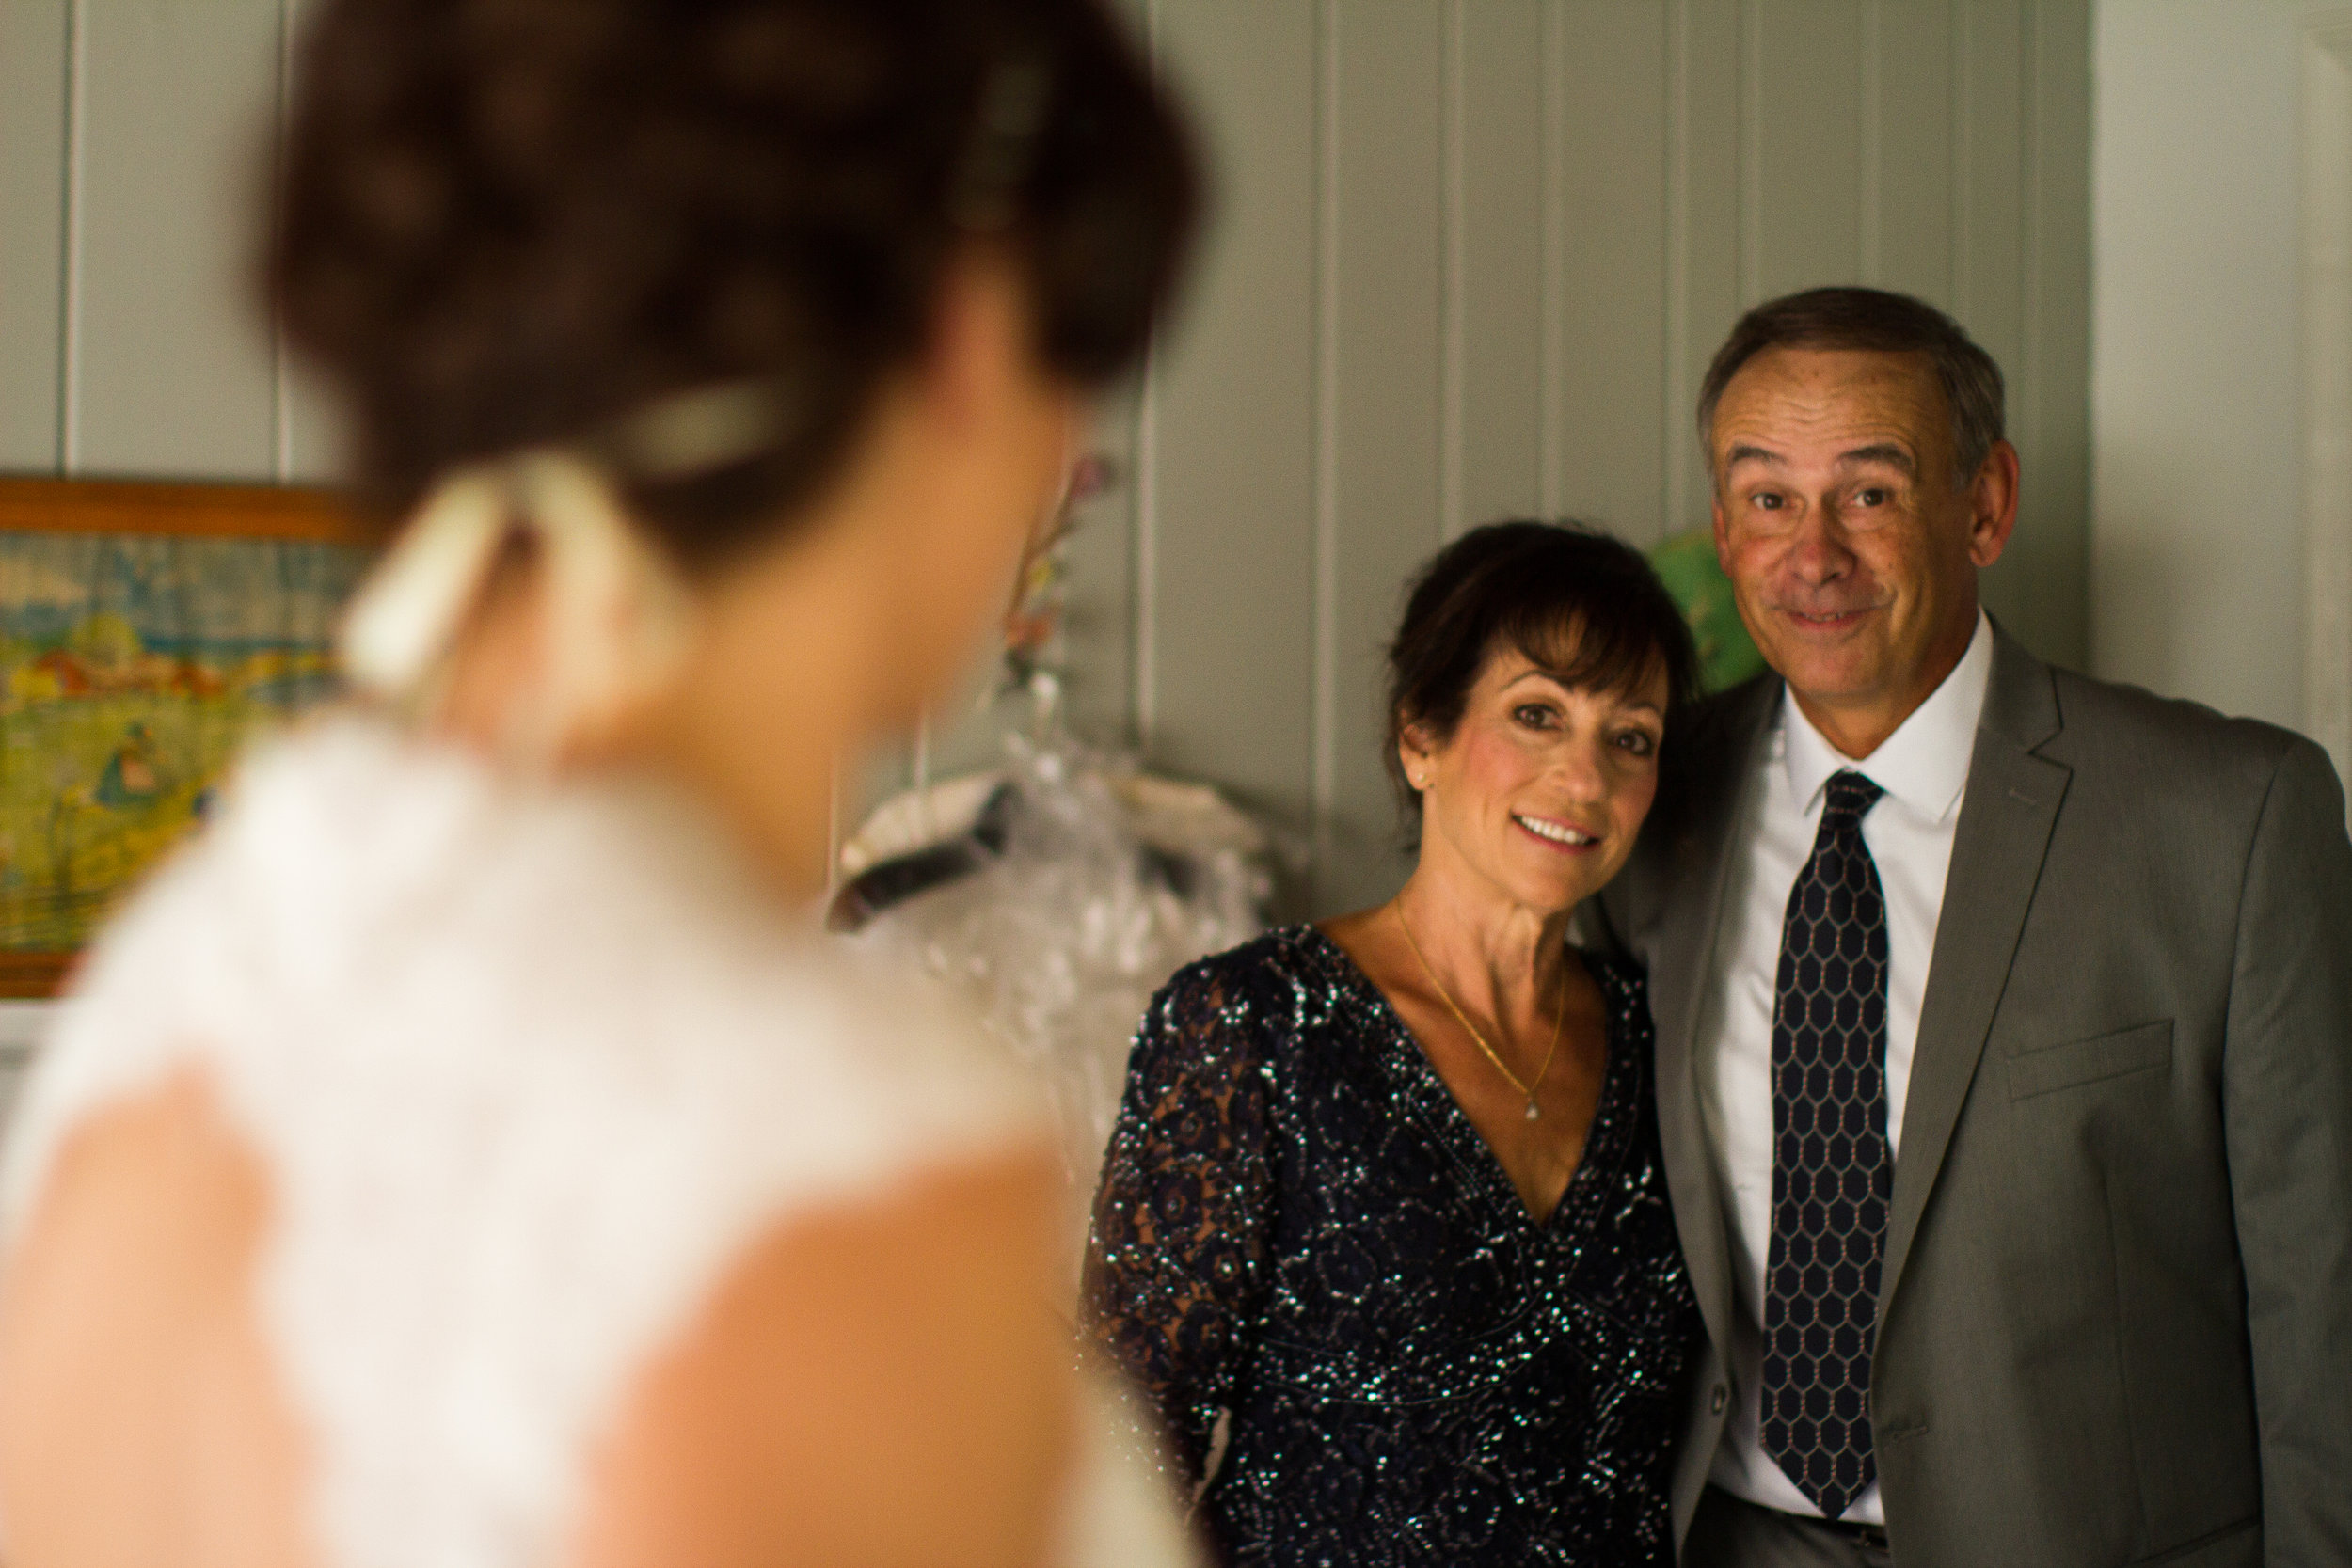 Jacqueline and Shawn Wedding (158 of 597).jpg